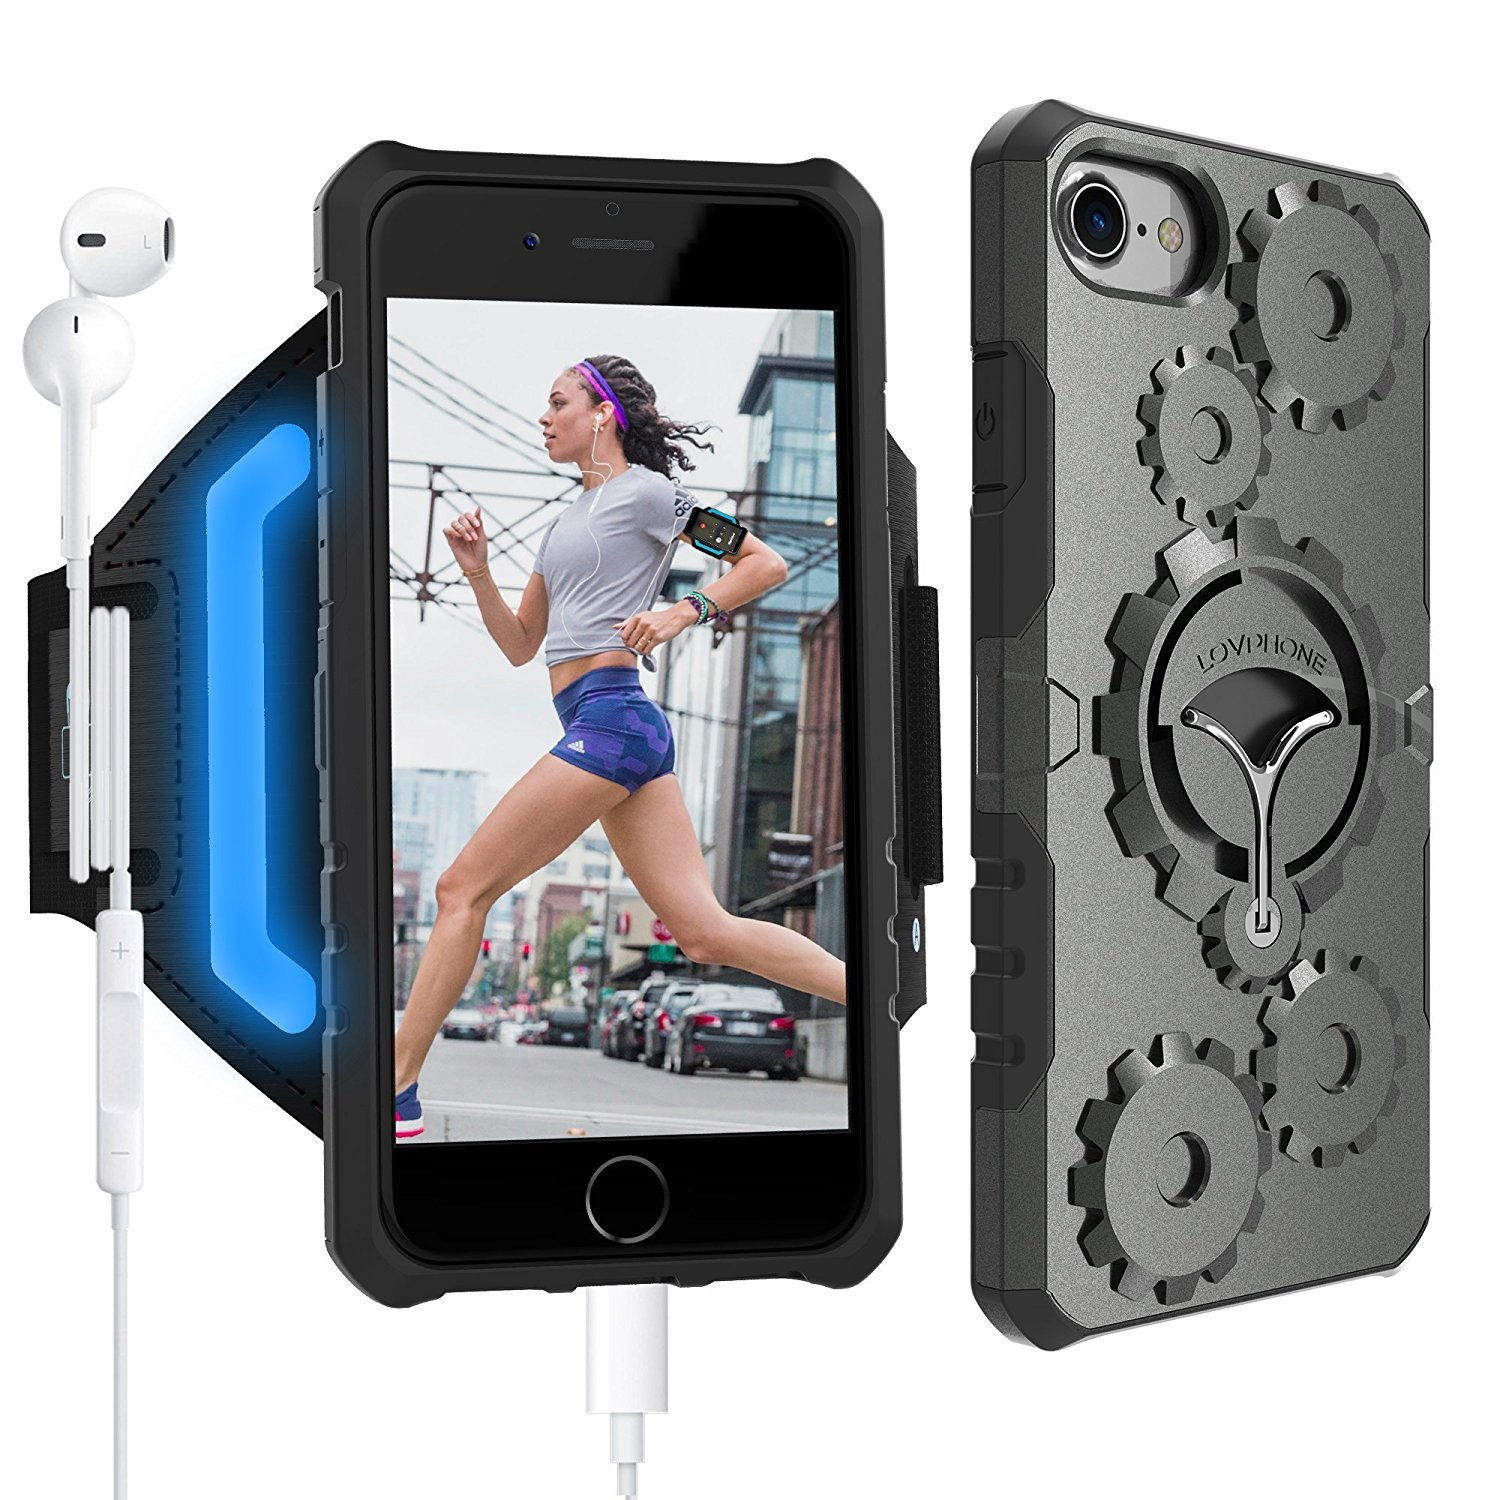 iPhone 7/7 Plus Armband & Armour Case Set-LOVPHONE Multifunctional Sport Running Armband + Premium Protective Case with Kickstand for iPhone 6/6S/7/7 Plus,Soft Elastic Strap with Key Holder